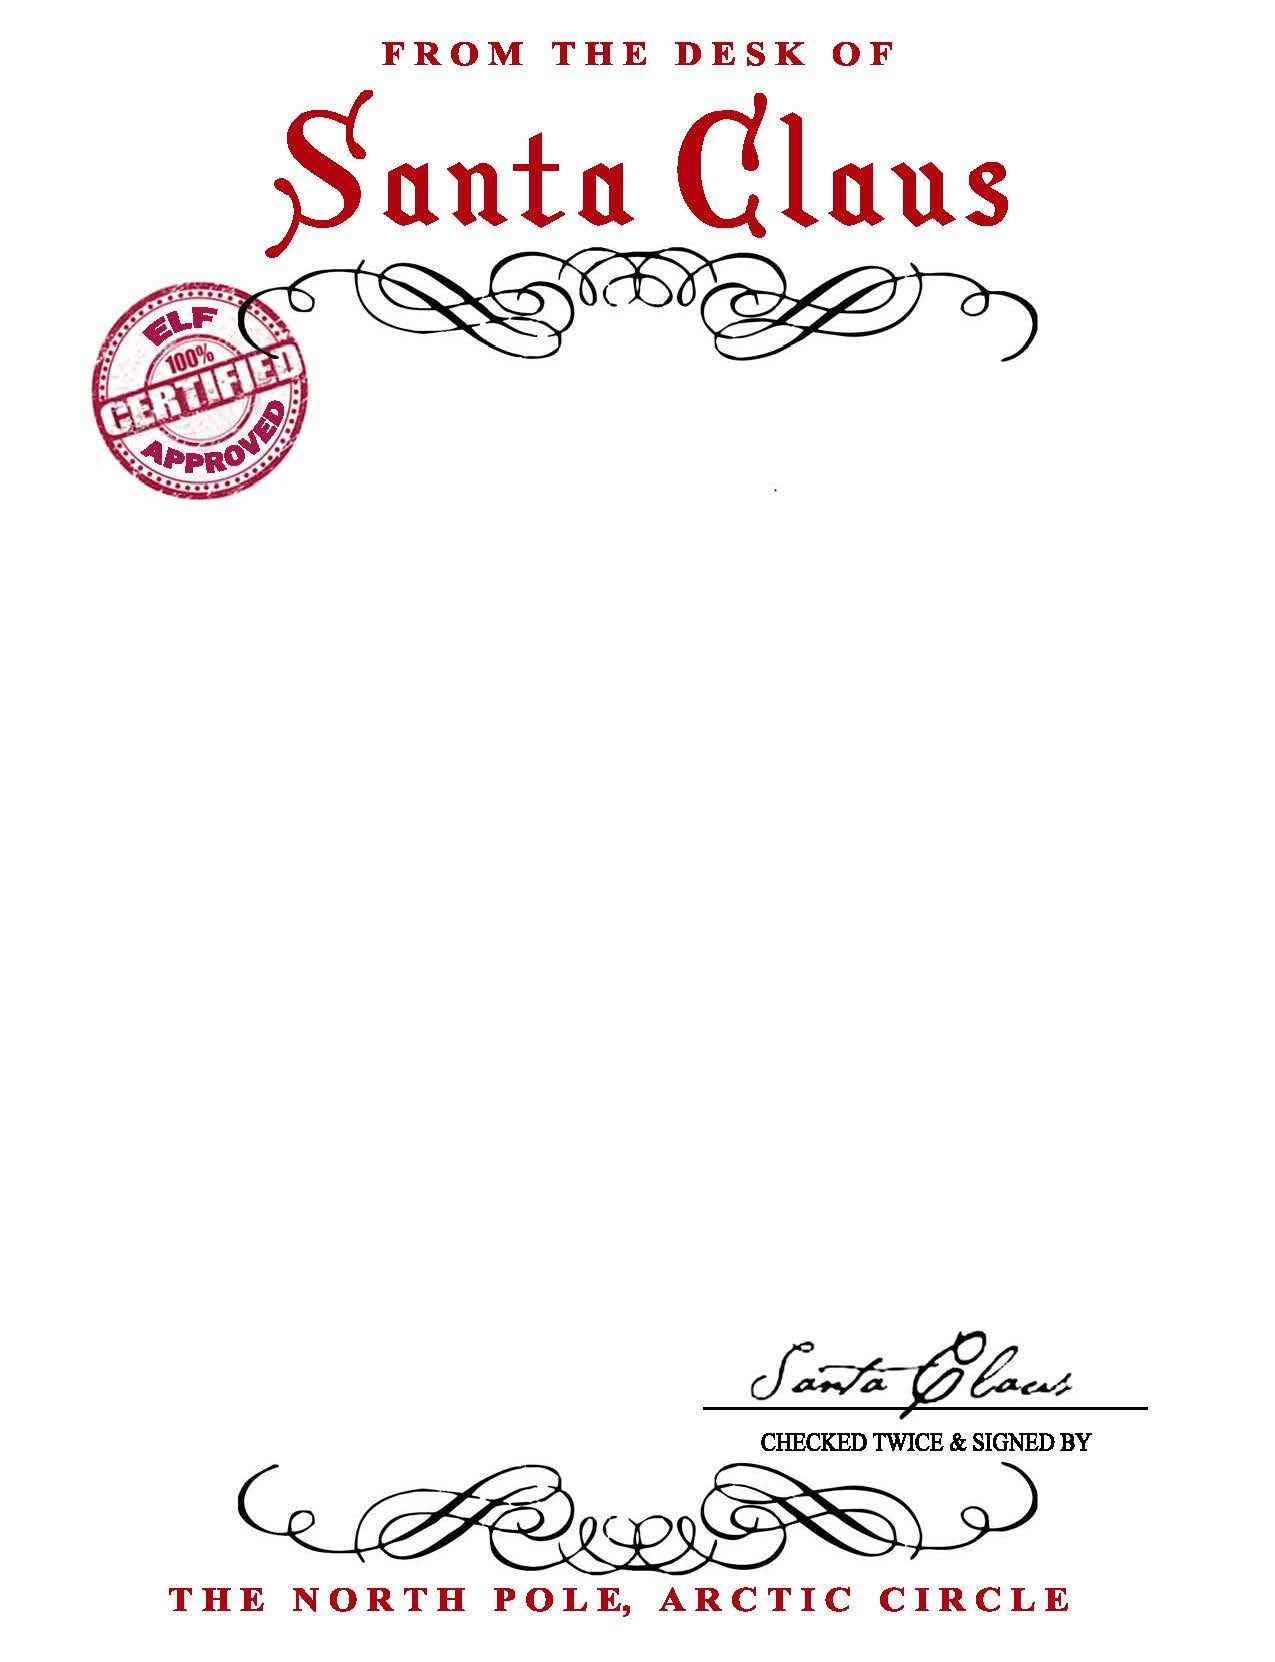 Secret Santa Letter Template - Santa Claus Letterhead Will Bring Lots Of Joy to Children